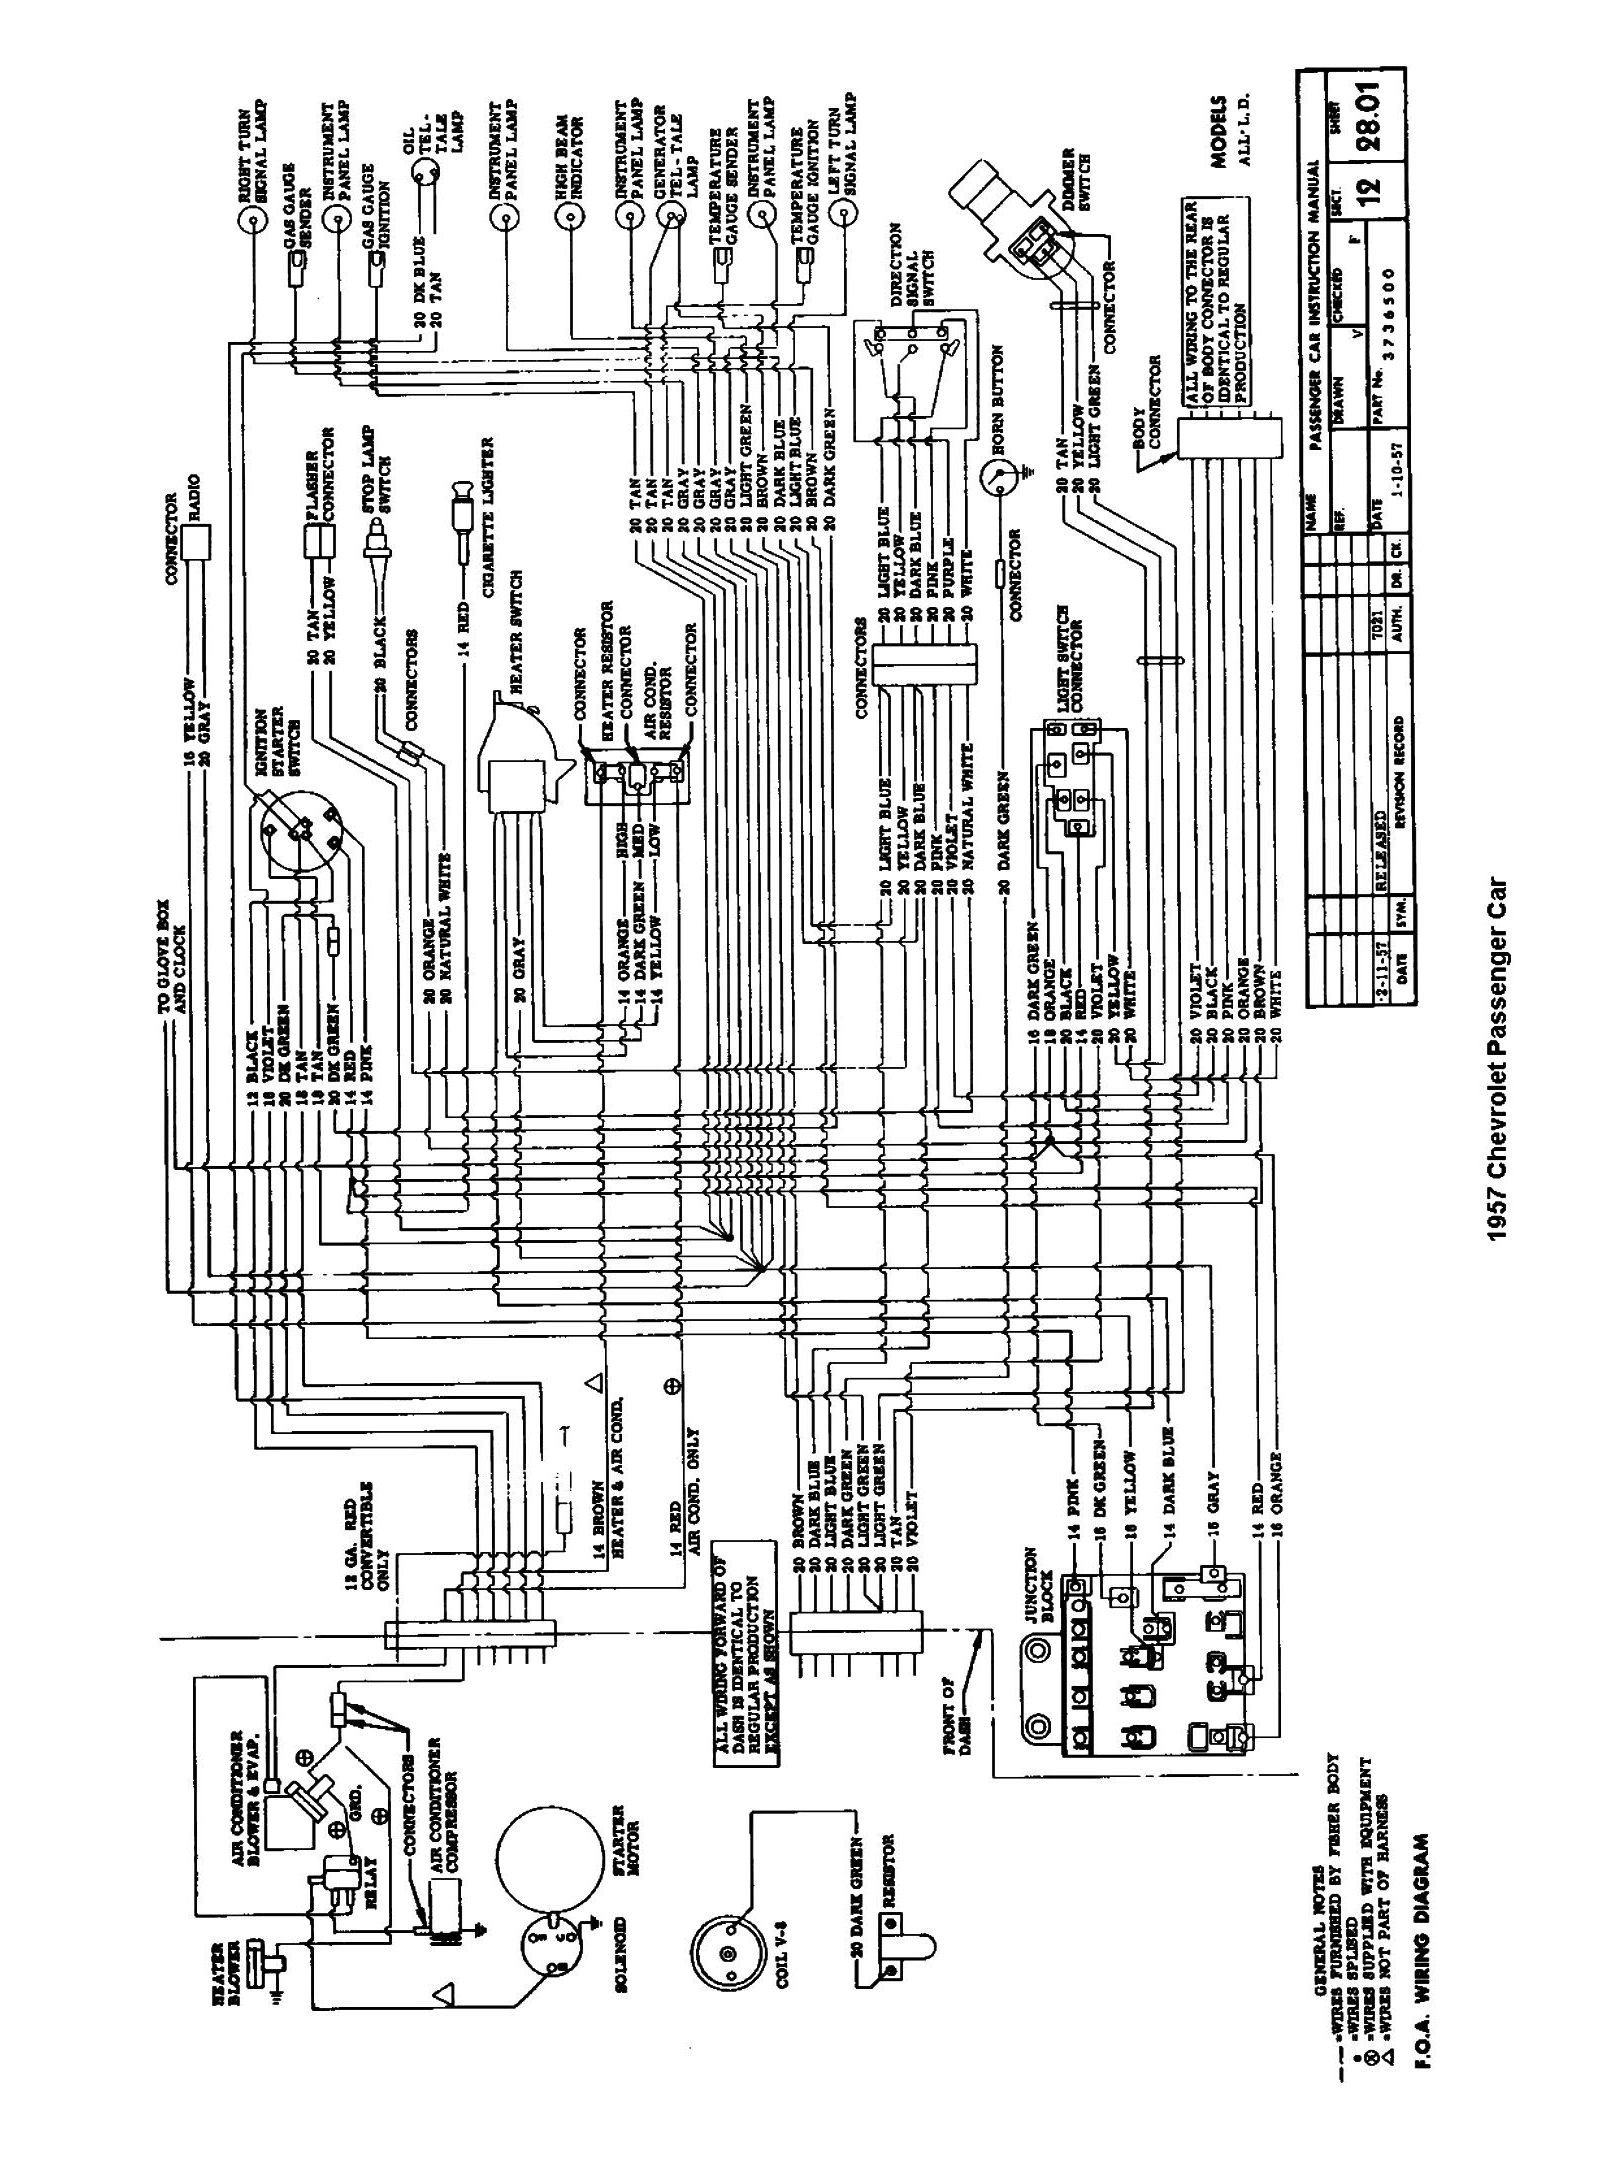 hight resolution of 1957 chevy truck wiring harness wiring diagram 1957 chevy truck wiring diagram 1957 chevy truck wiring